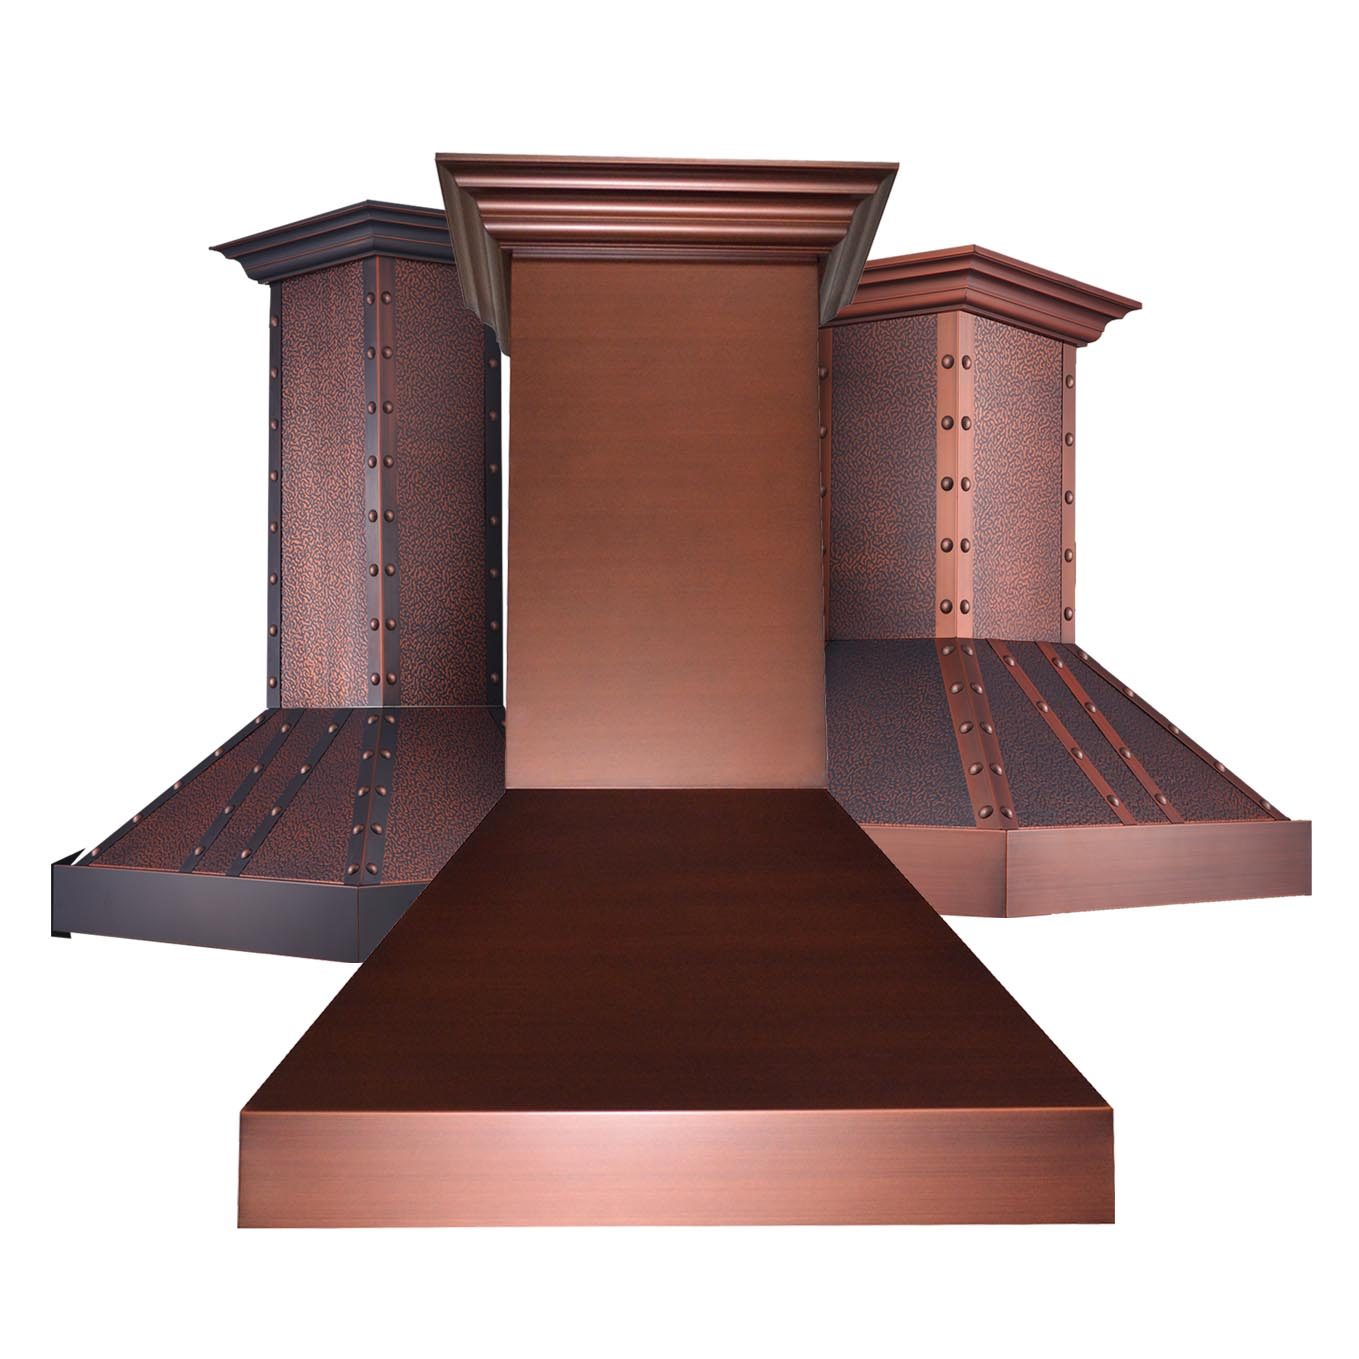 Designer Series Copper Hood